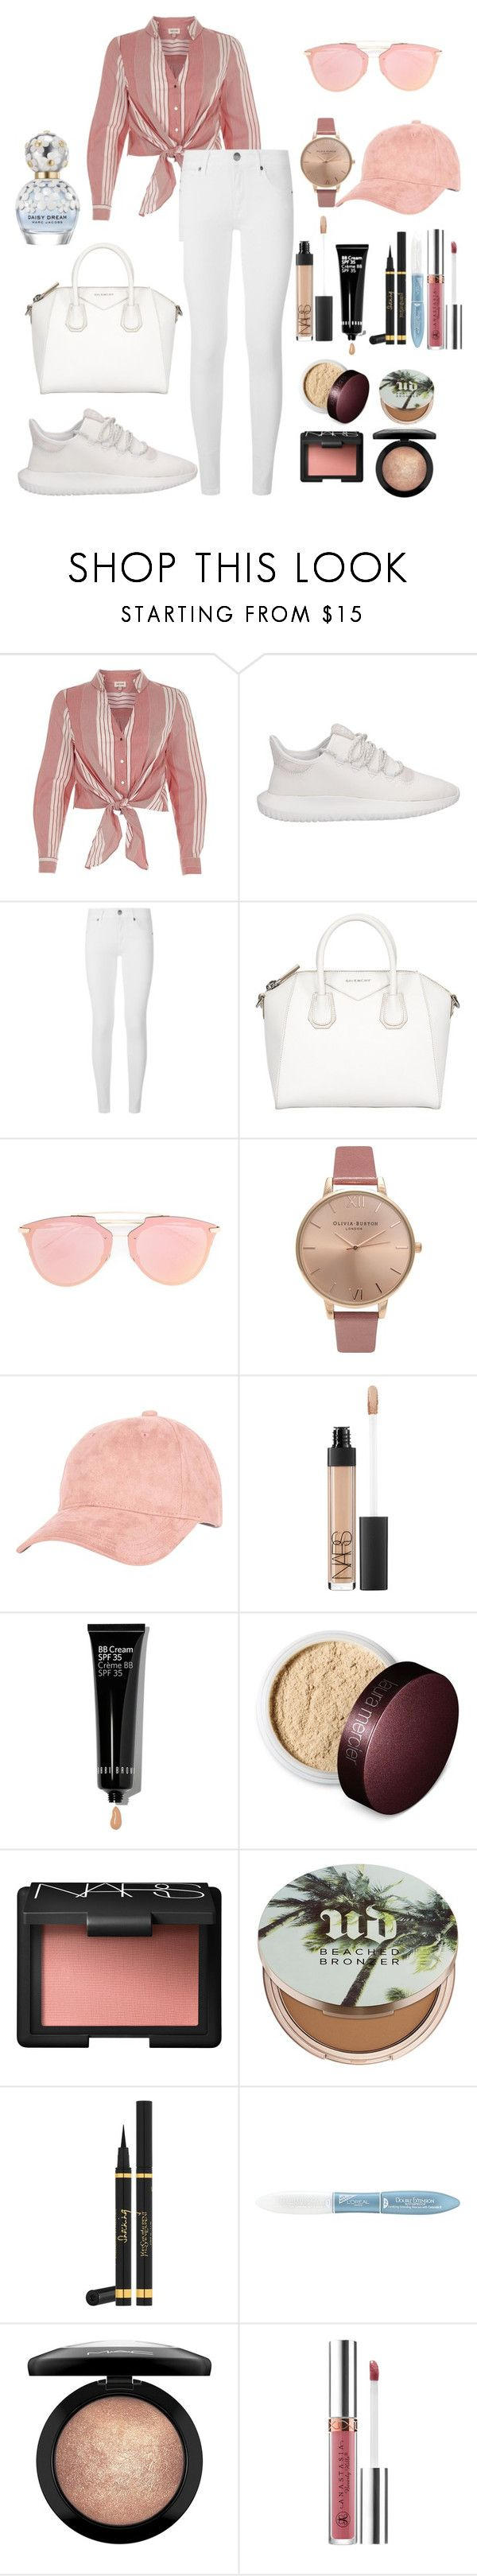 """Untitled #110"" by rahmadita14 on Polyvore featuring River Island, adidas, Burberry, Givenchy, Christian Dior, Olivia Burton, Billabong, NARS Cosmetics, Bobbi Brown Cosmetics and Laura Mercier"